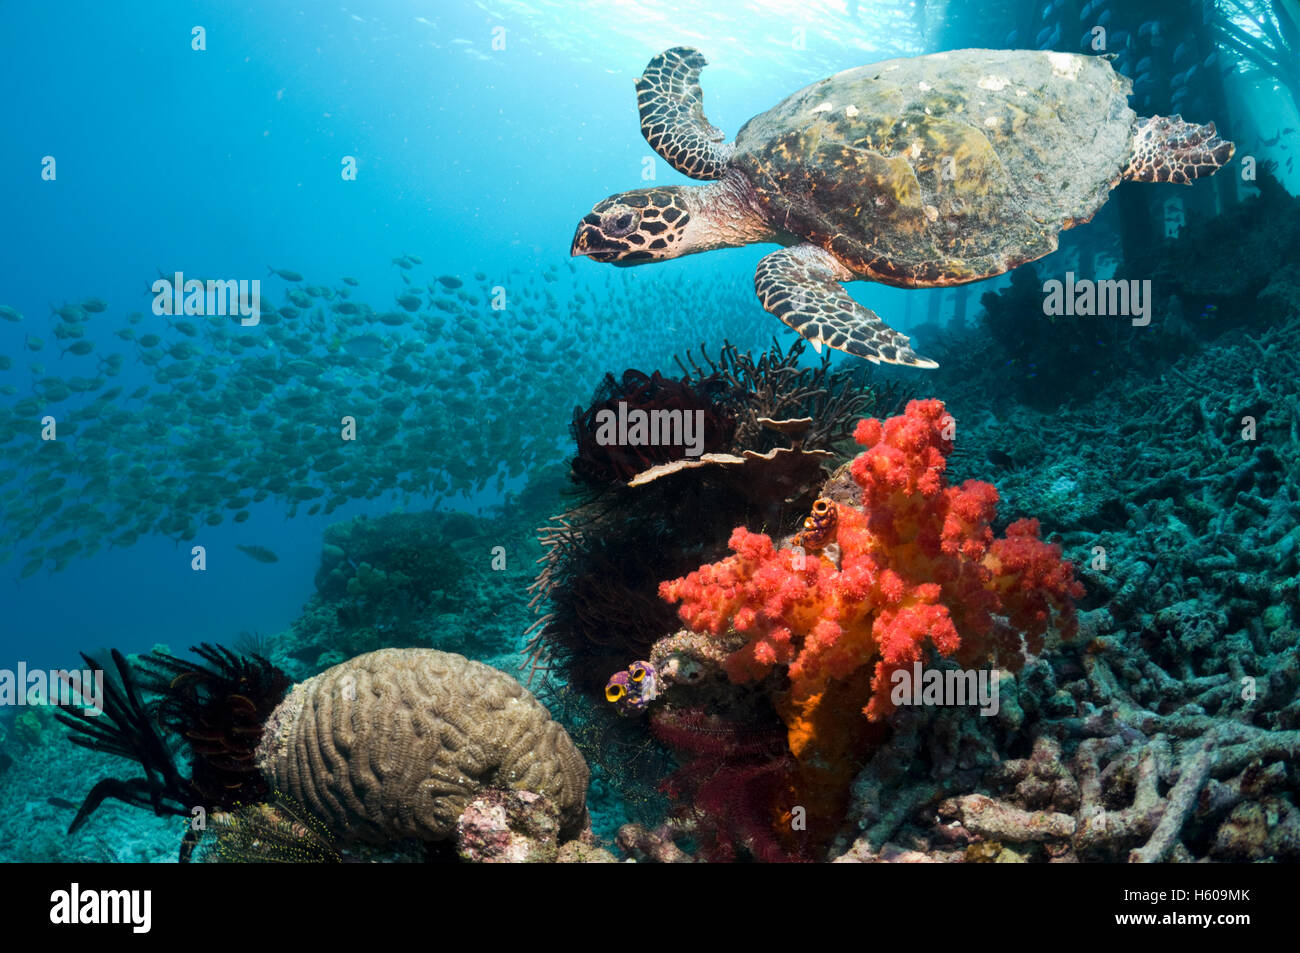 Hawksbill turtle (Eretmochelys imbricata) swimming over coral reef with soft coral.  Misool, West Papua, Raja Ampat, - Stock Image